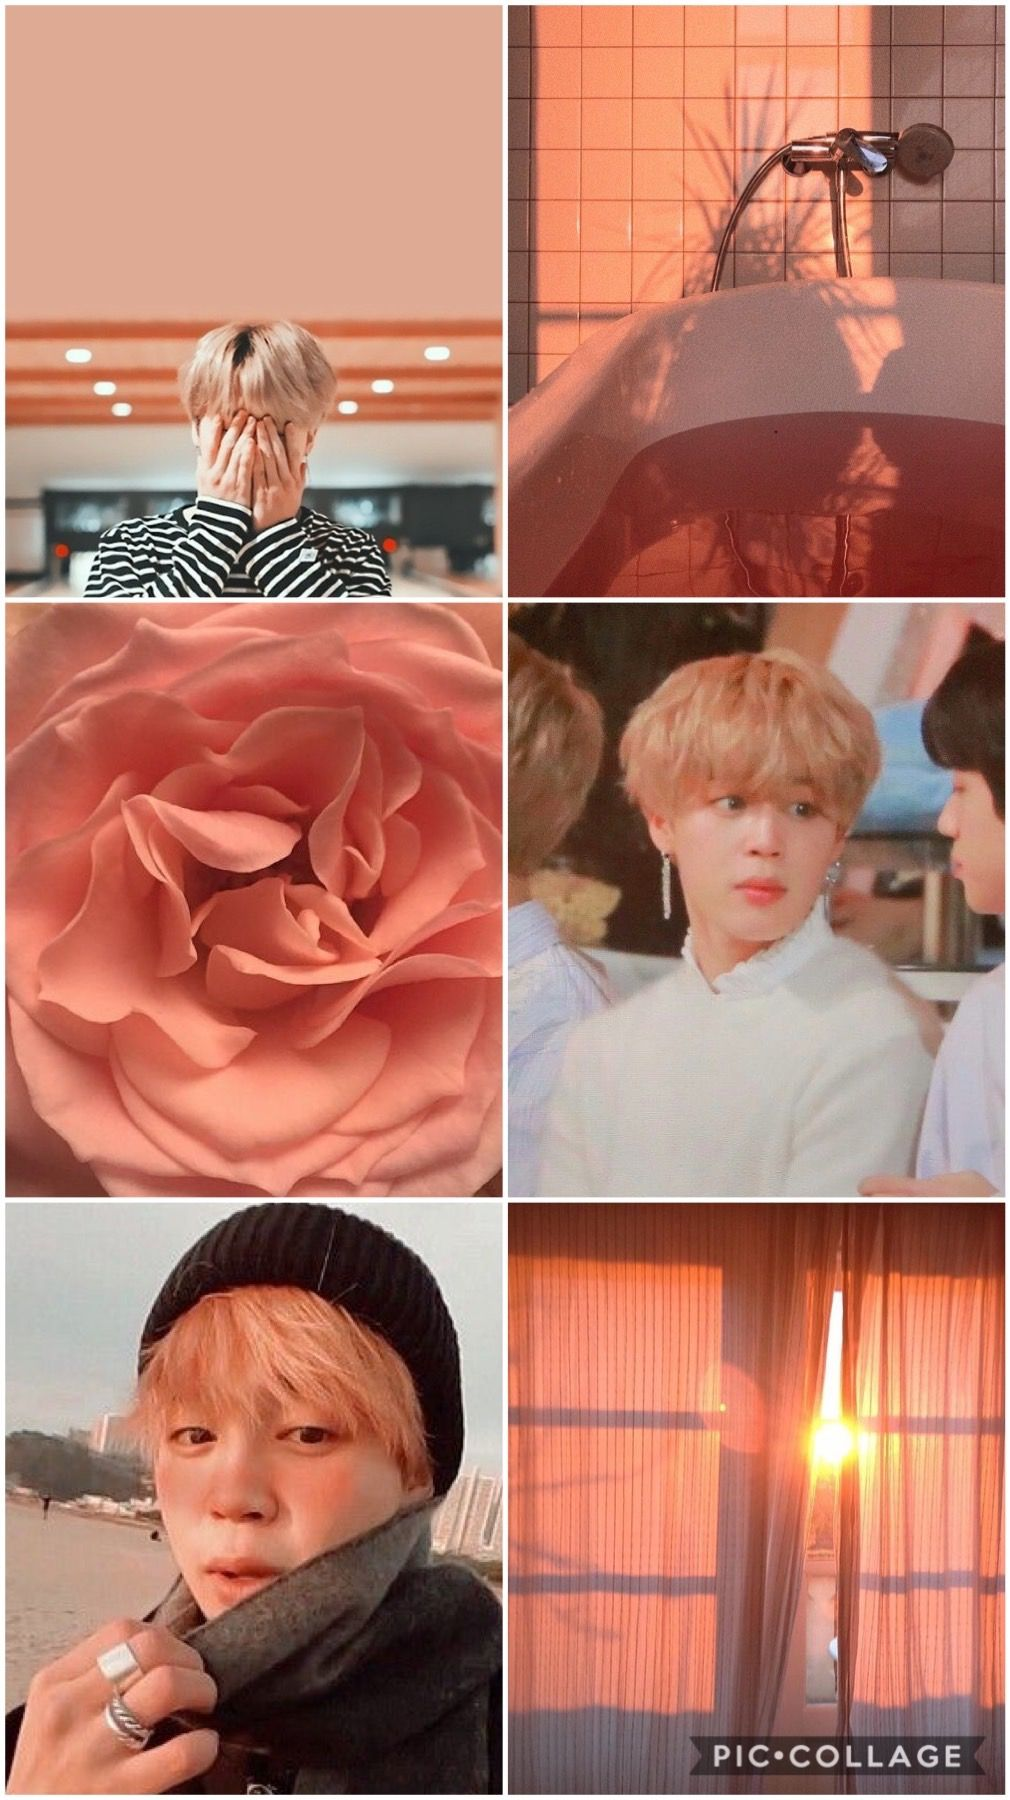 Jimin peach aesthetic Jimin wallpaper, Peach aesthetic